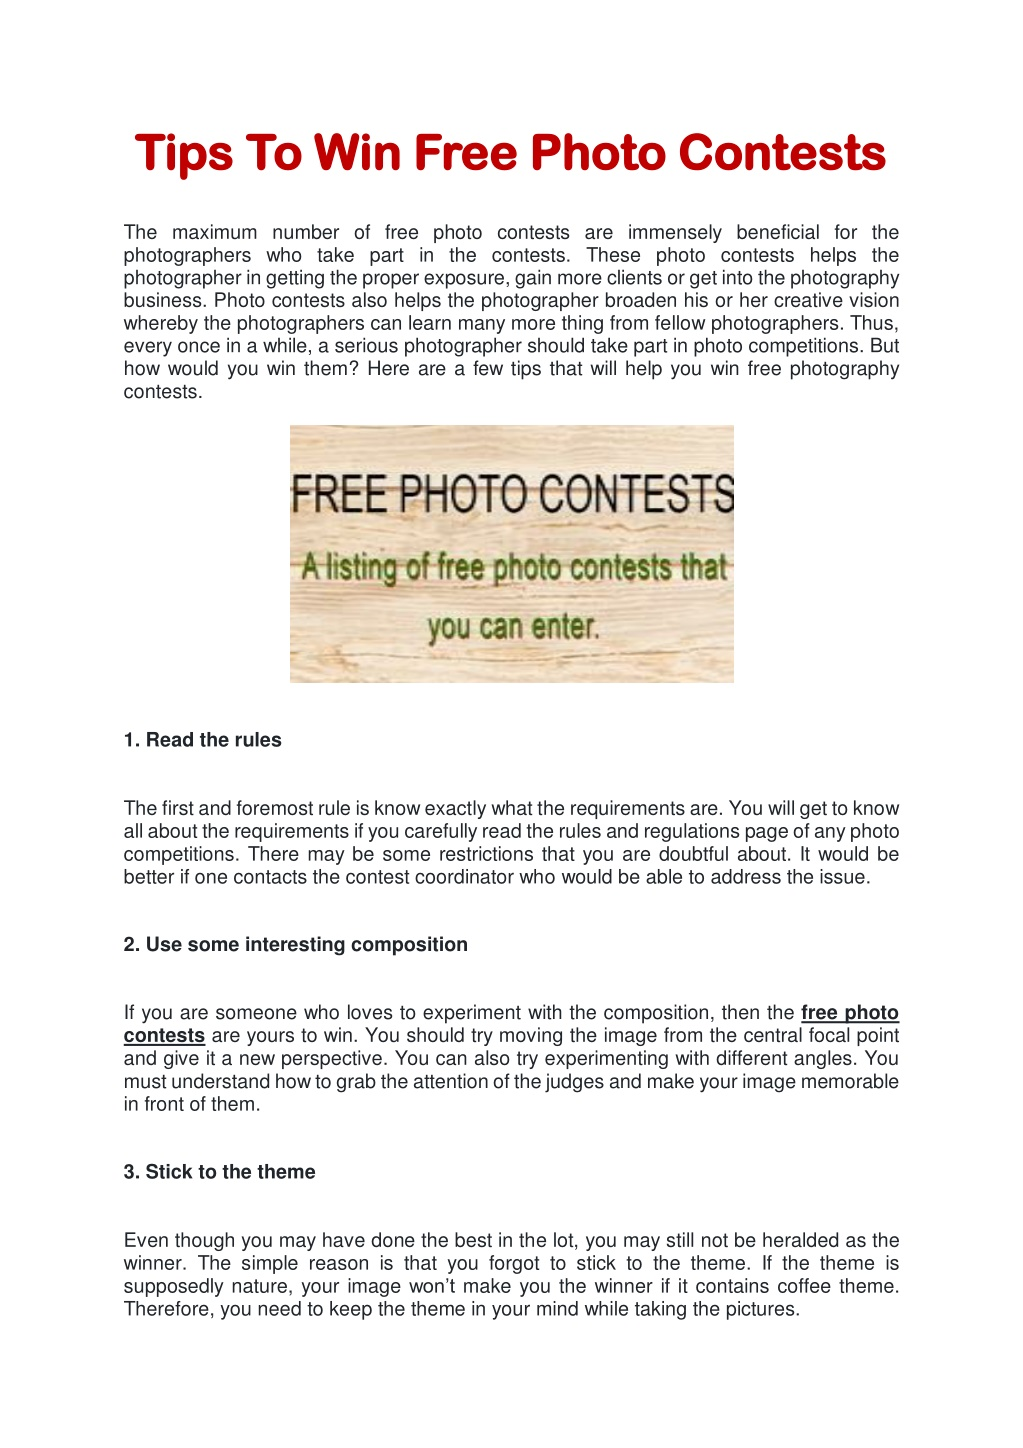 PPT - Tips To Win Free Photo Contests PowerPoint Presentation, free download - ID:10094286